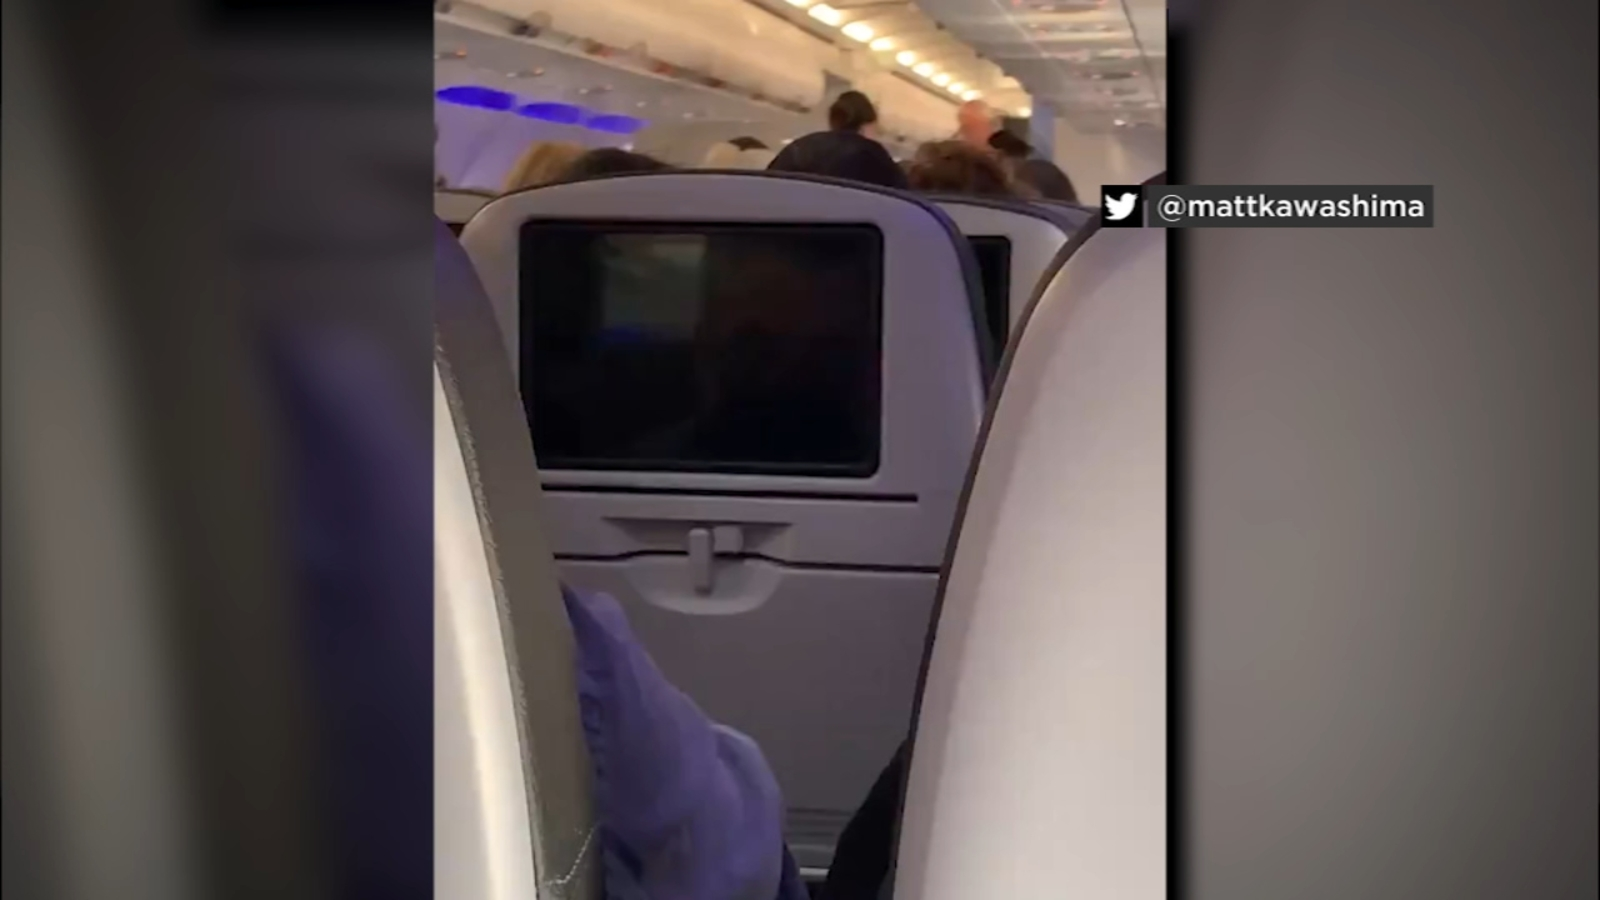 EXCLUSIVE: Passenger on SFO-bound flight refuses to wear mask, snorts substance, becomes abusive